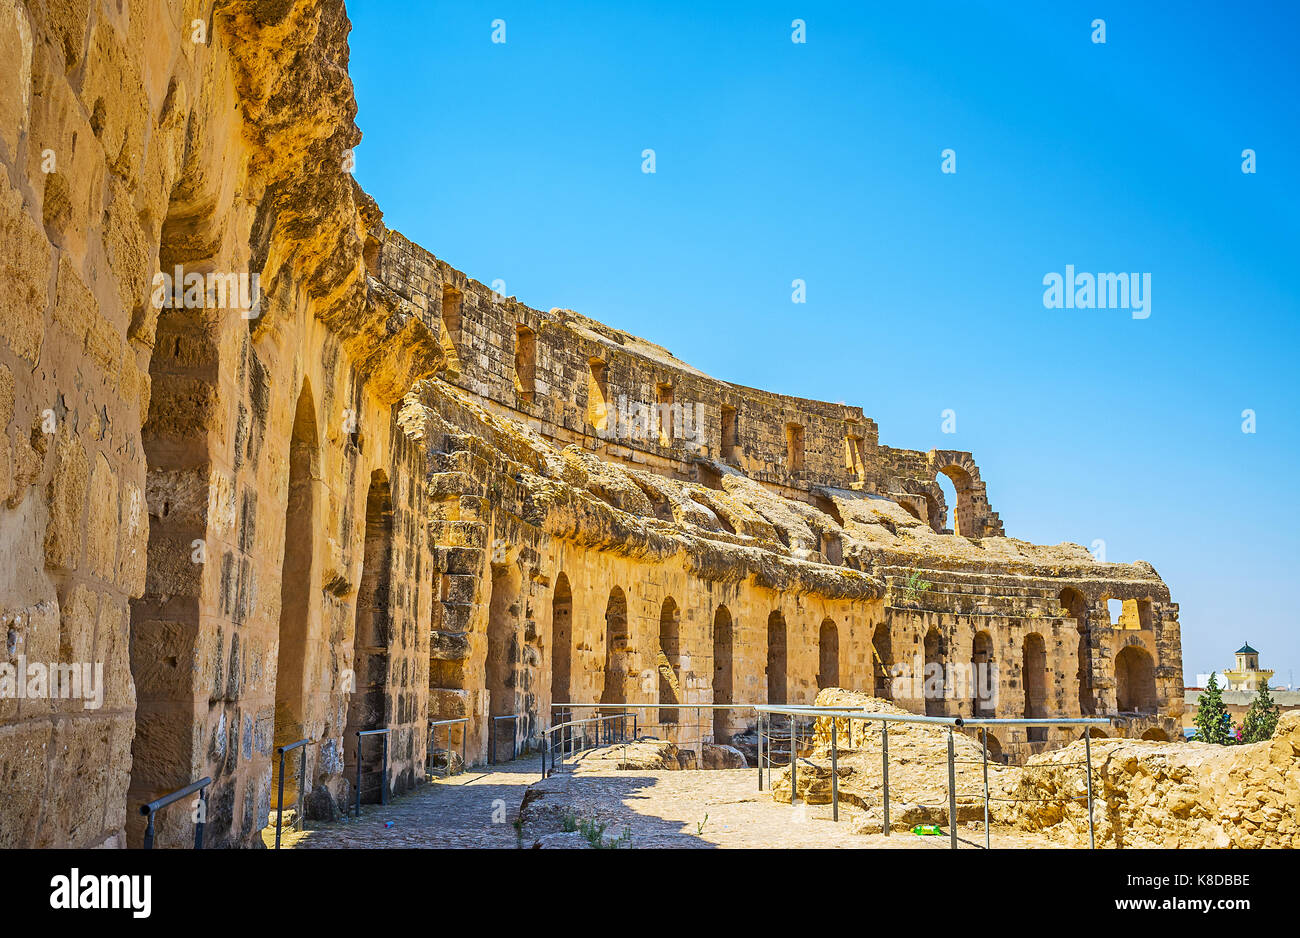 EL DJEM, TUNISIA - SEPTEMBER 1, 2015: The ruins of the limestone wall of  El Jem amphitheater, the pearl of the - Stock Image